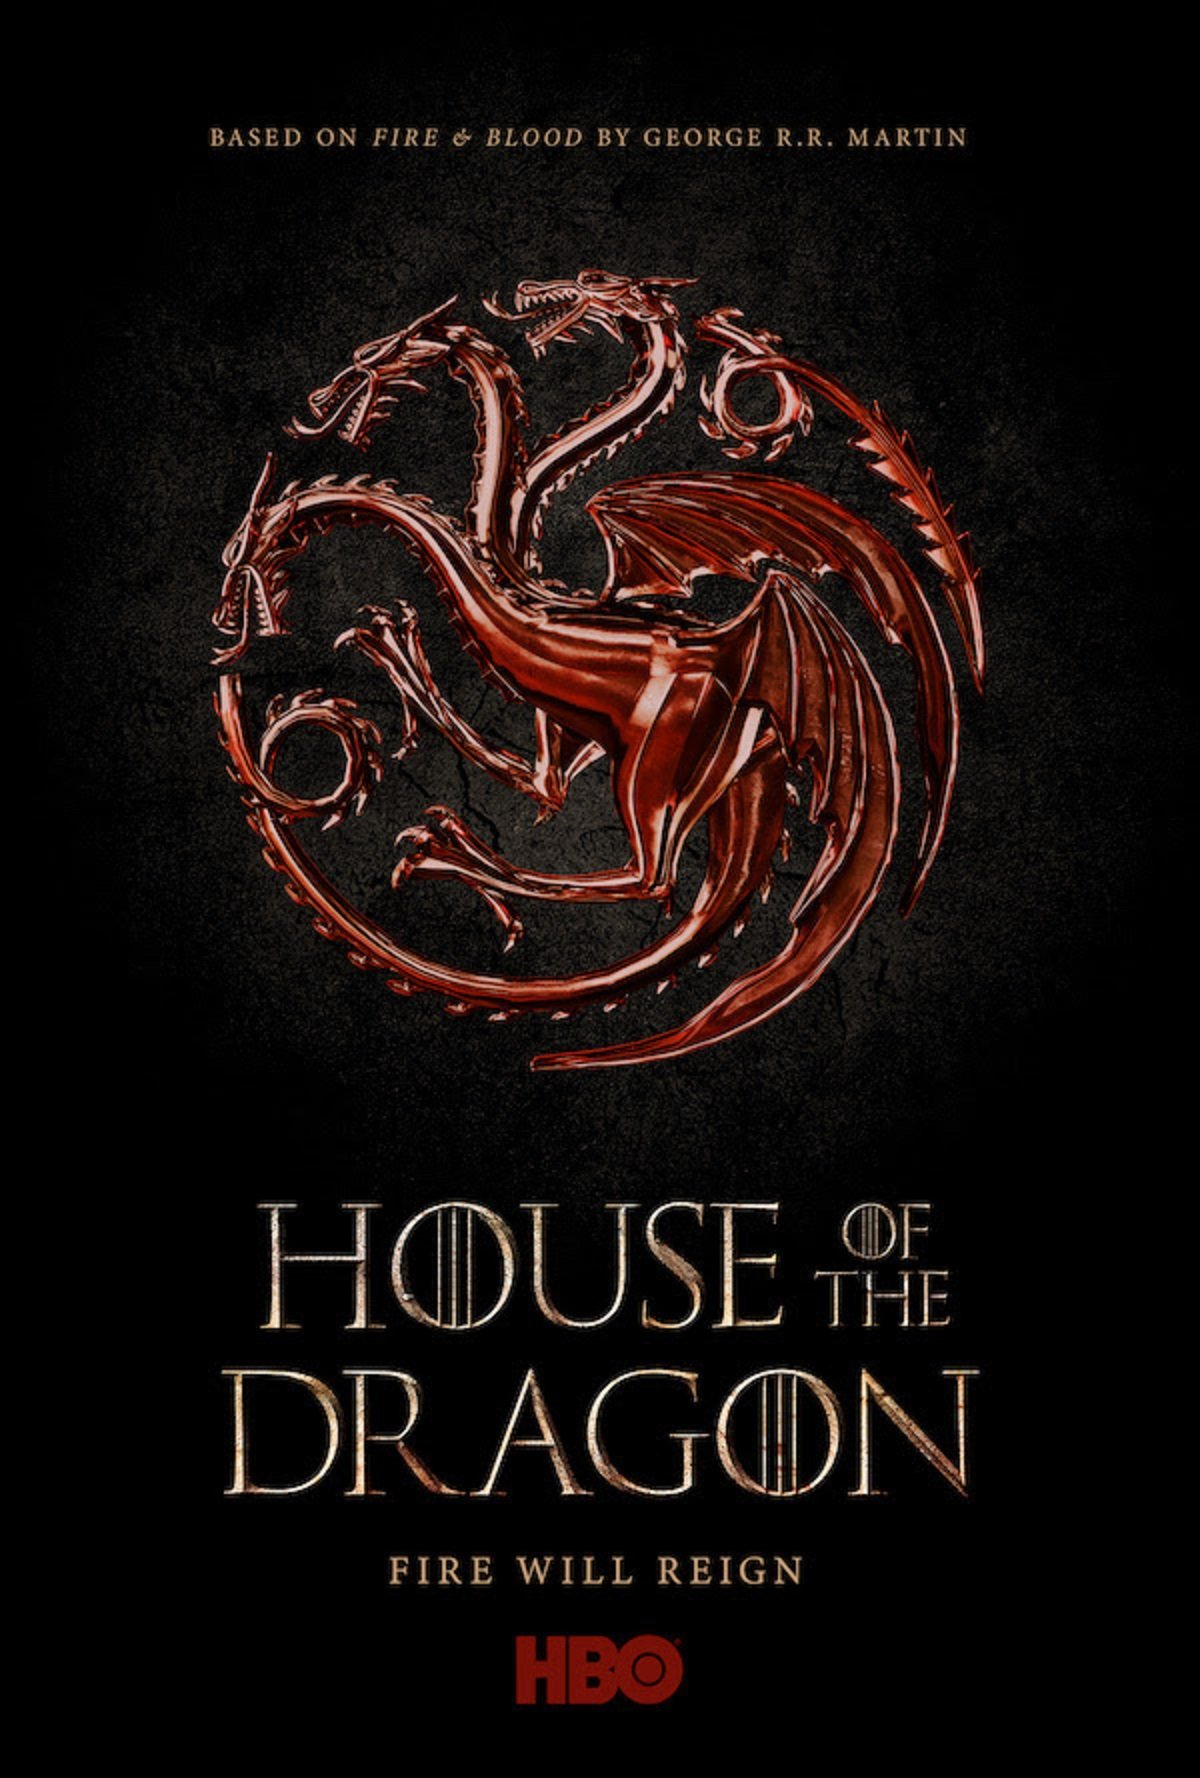 game of thrones house of the dragon fire will reign hbo